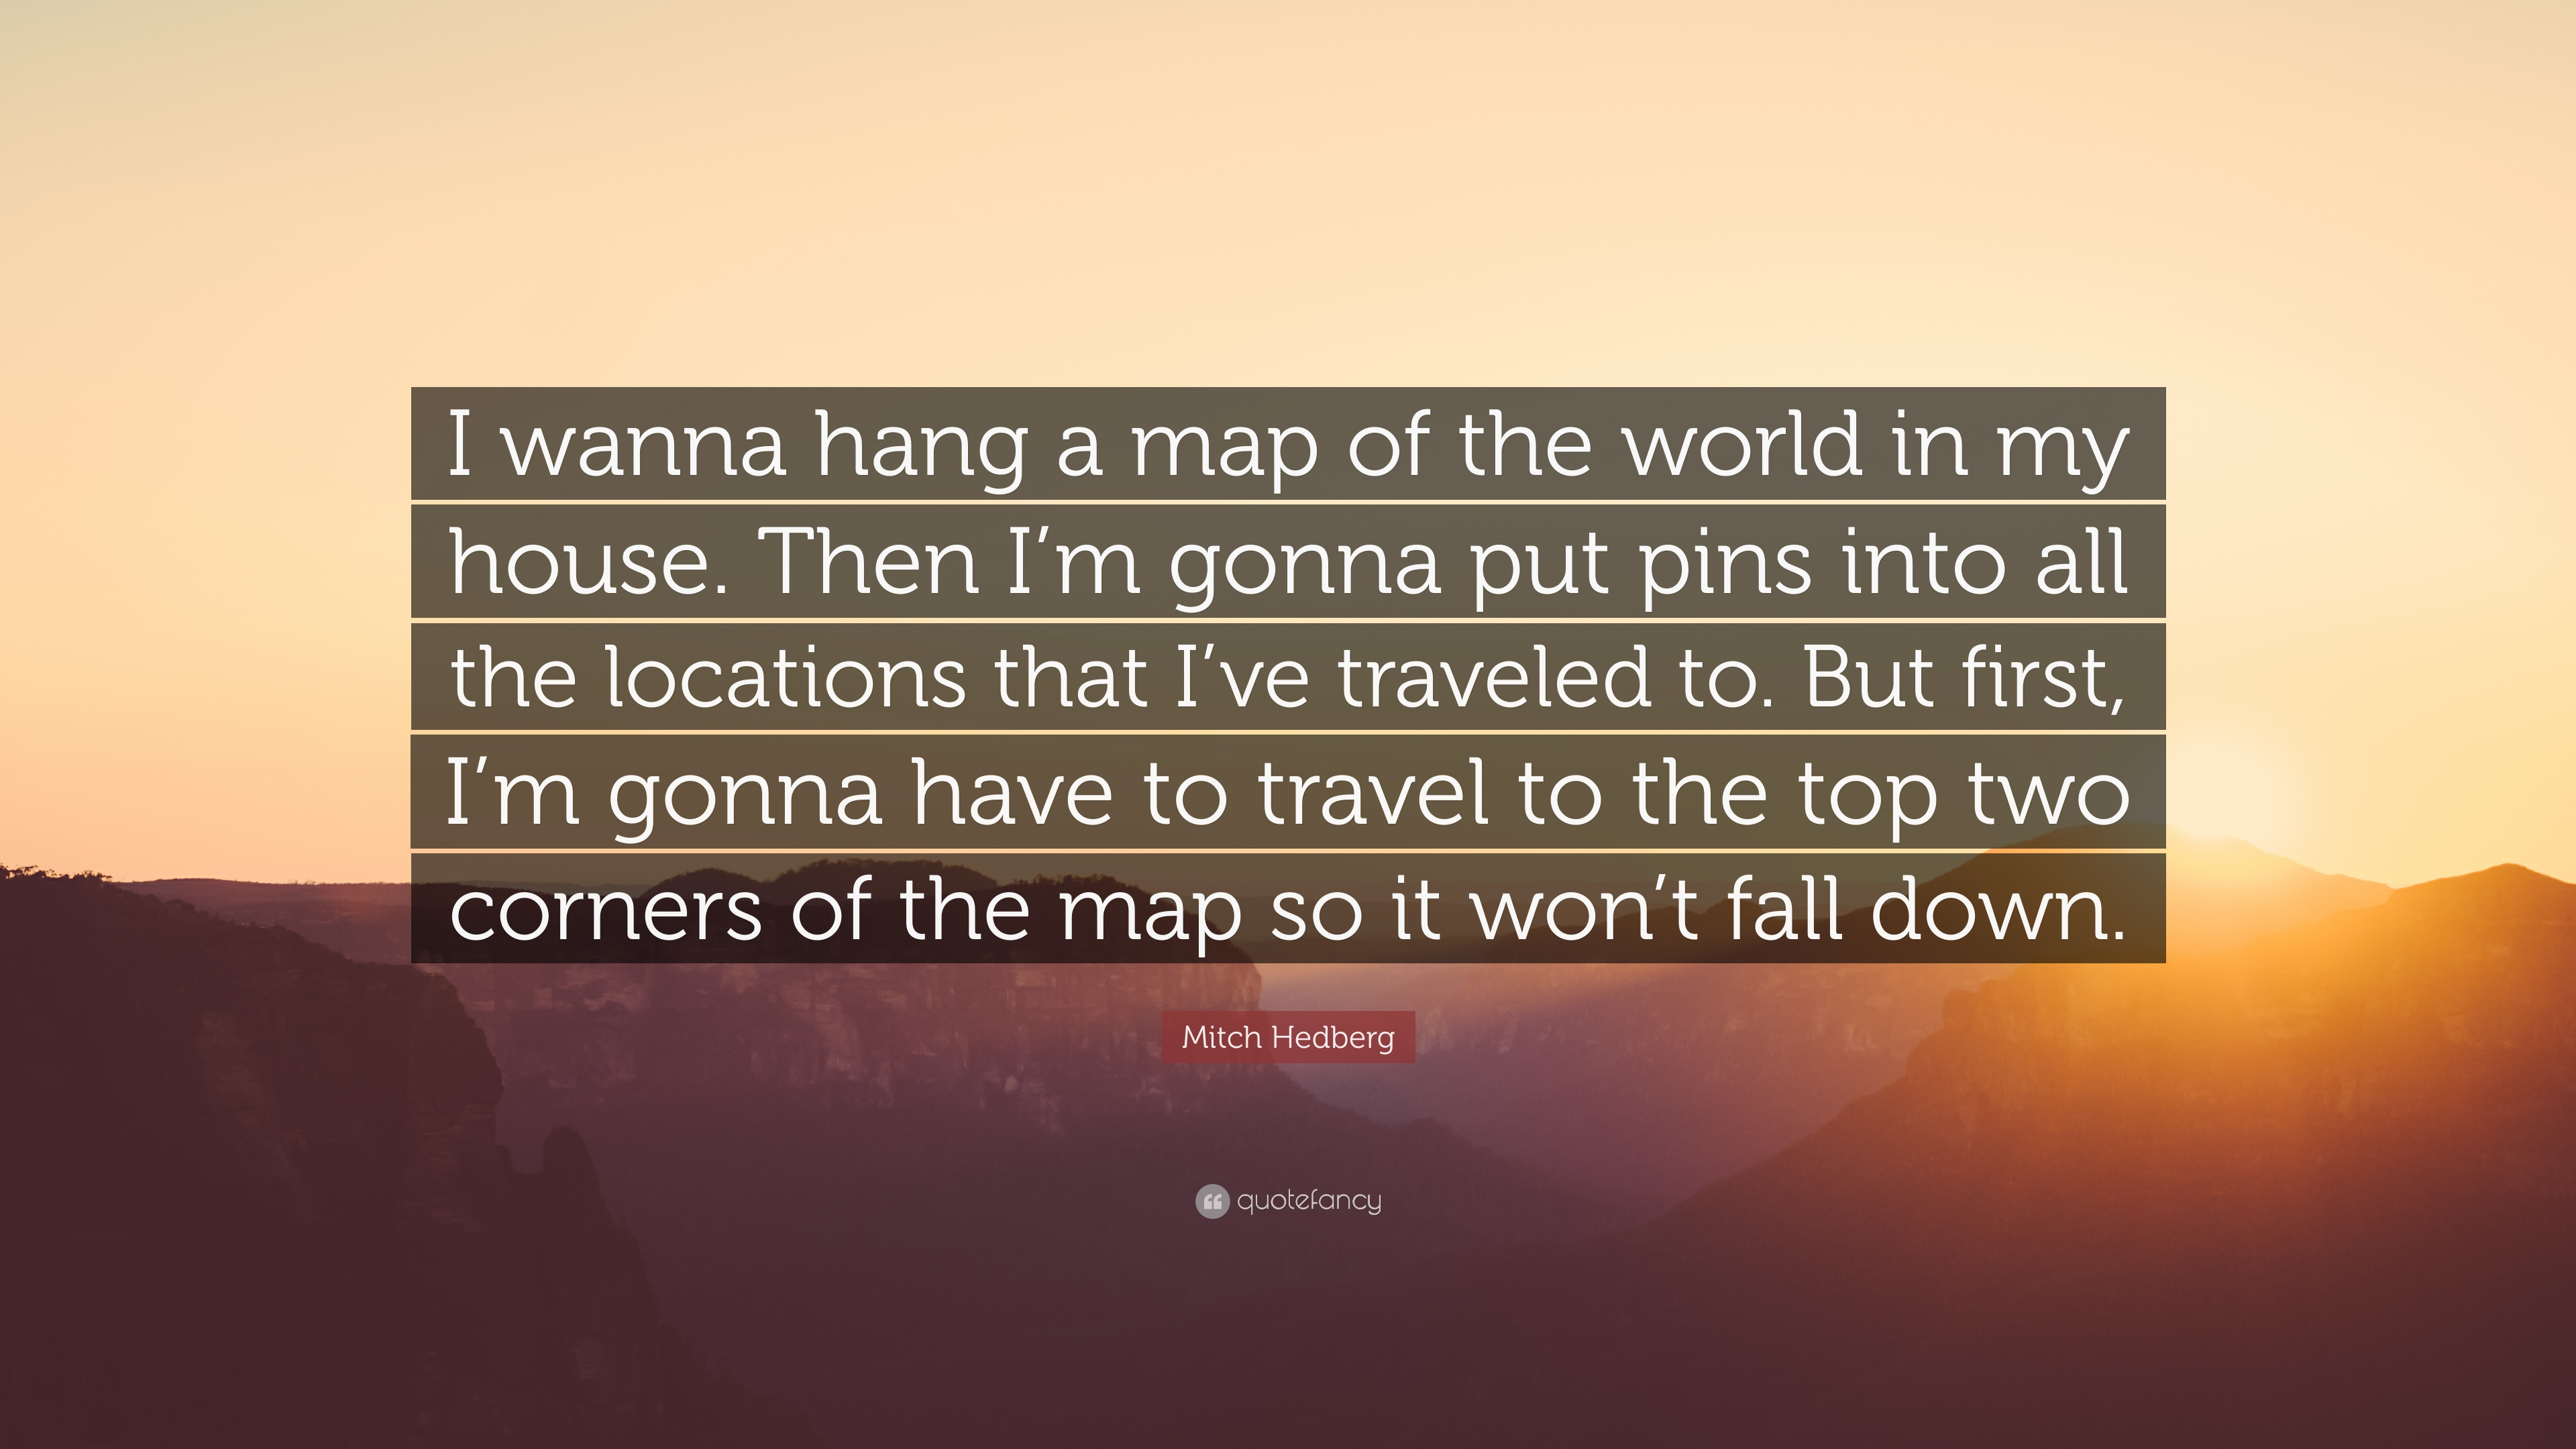 Mitch hedberg quote i wanna hang a map of the world in my house mitch hedberg quote i wanna hang a map of the world in my house gumiabroncs Images